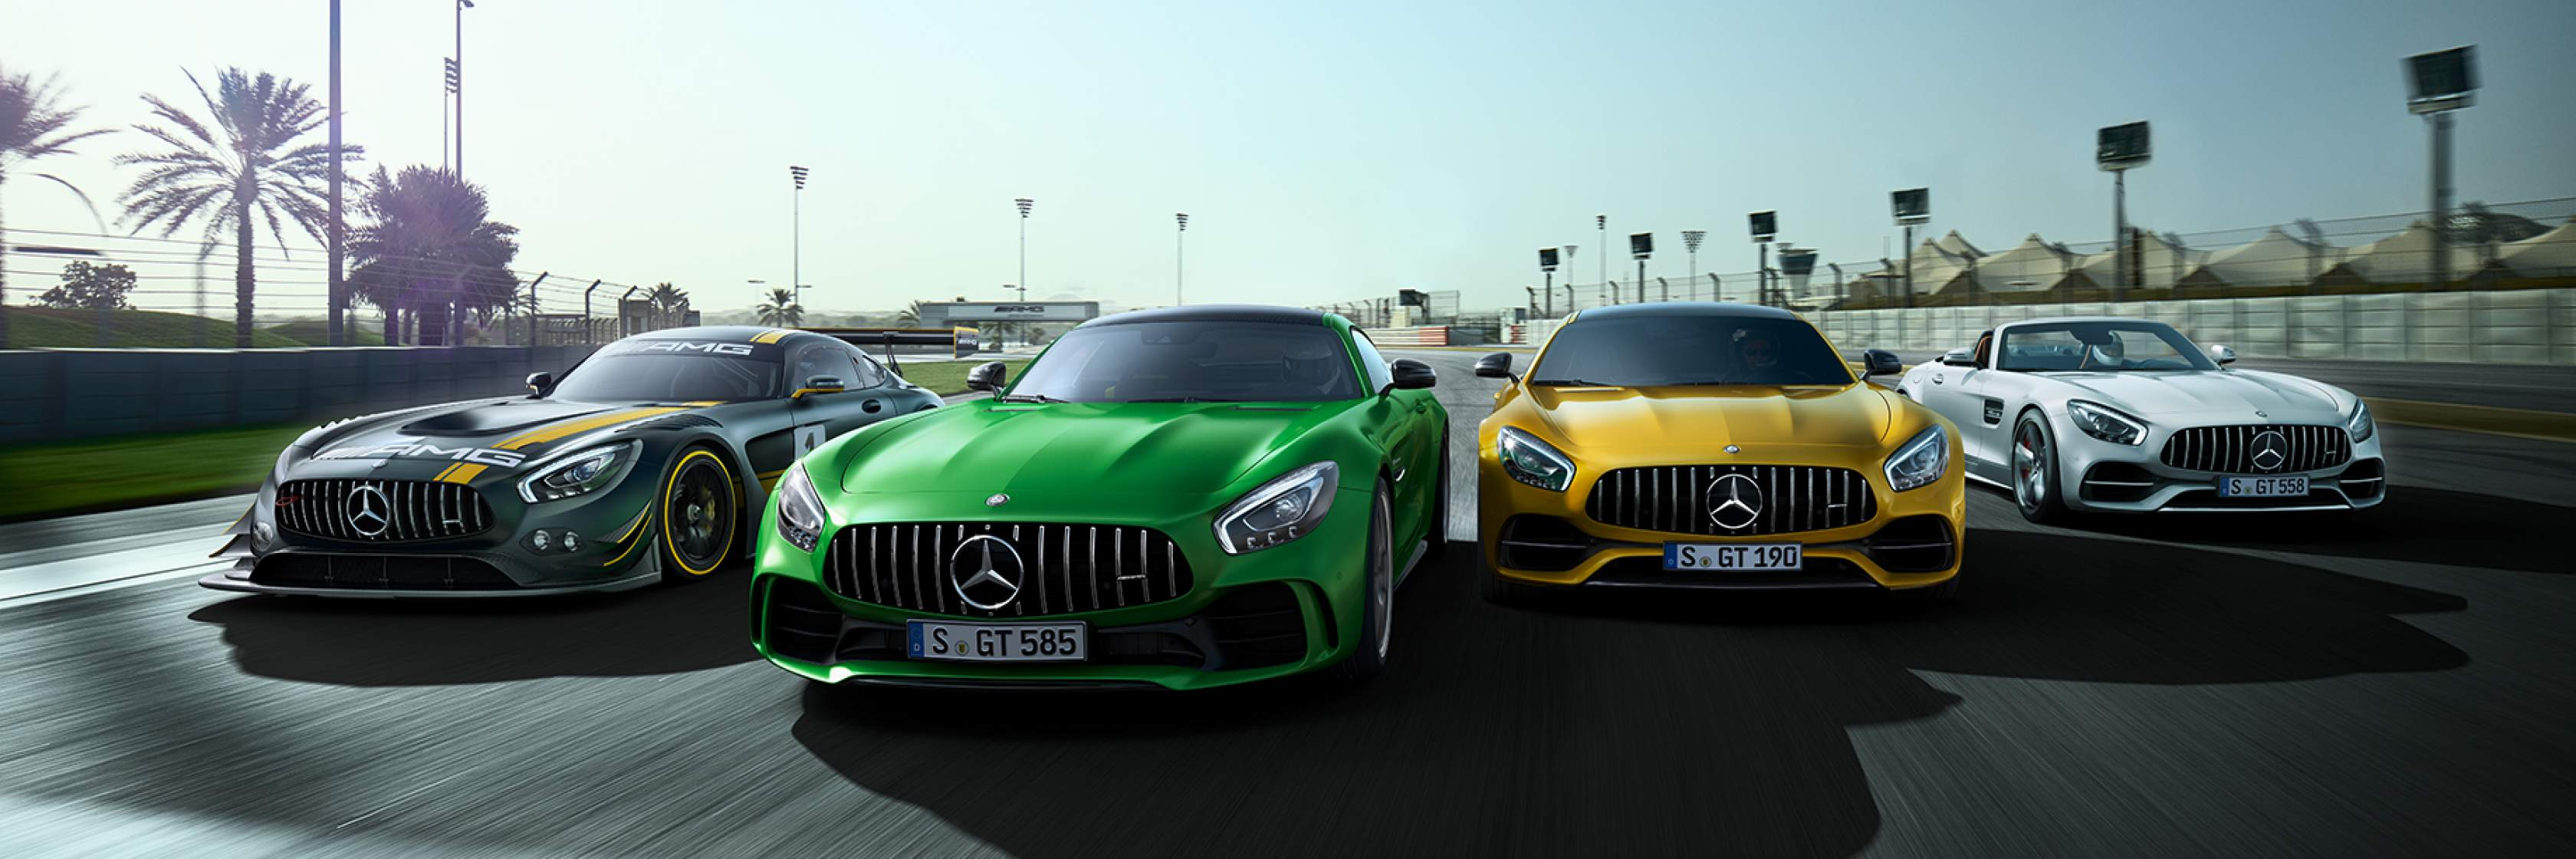 Mercedes-AMG GT Mercedes-AMG GT R Mercedes-AMG GT C Edition 50 Mercedes-AMG GT S купе